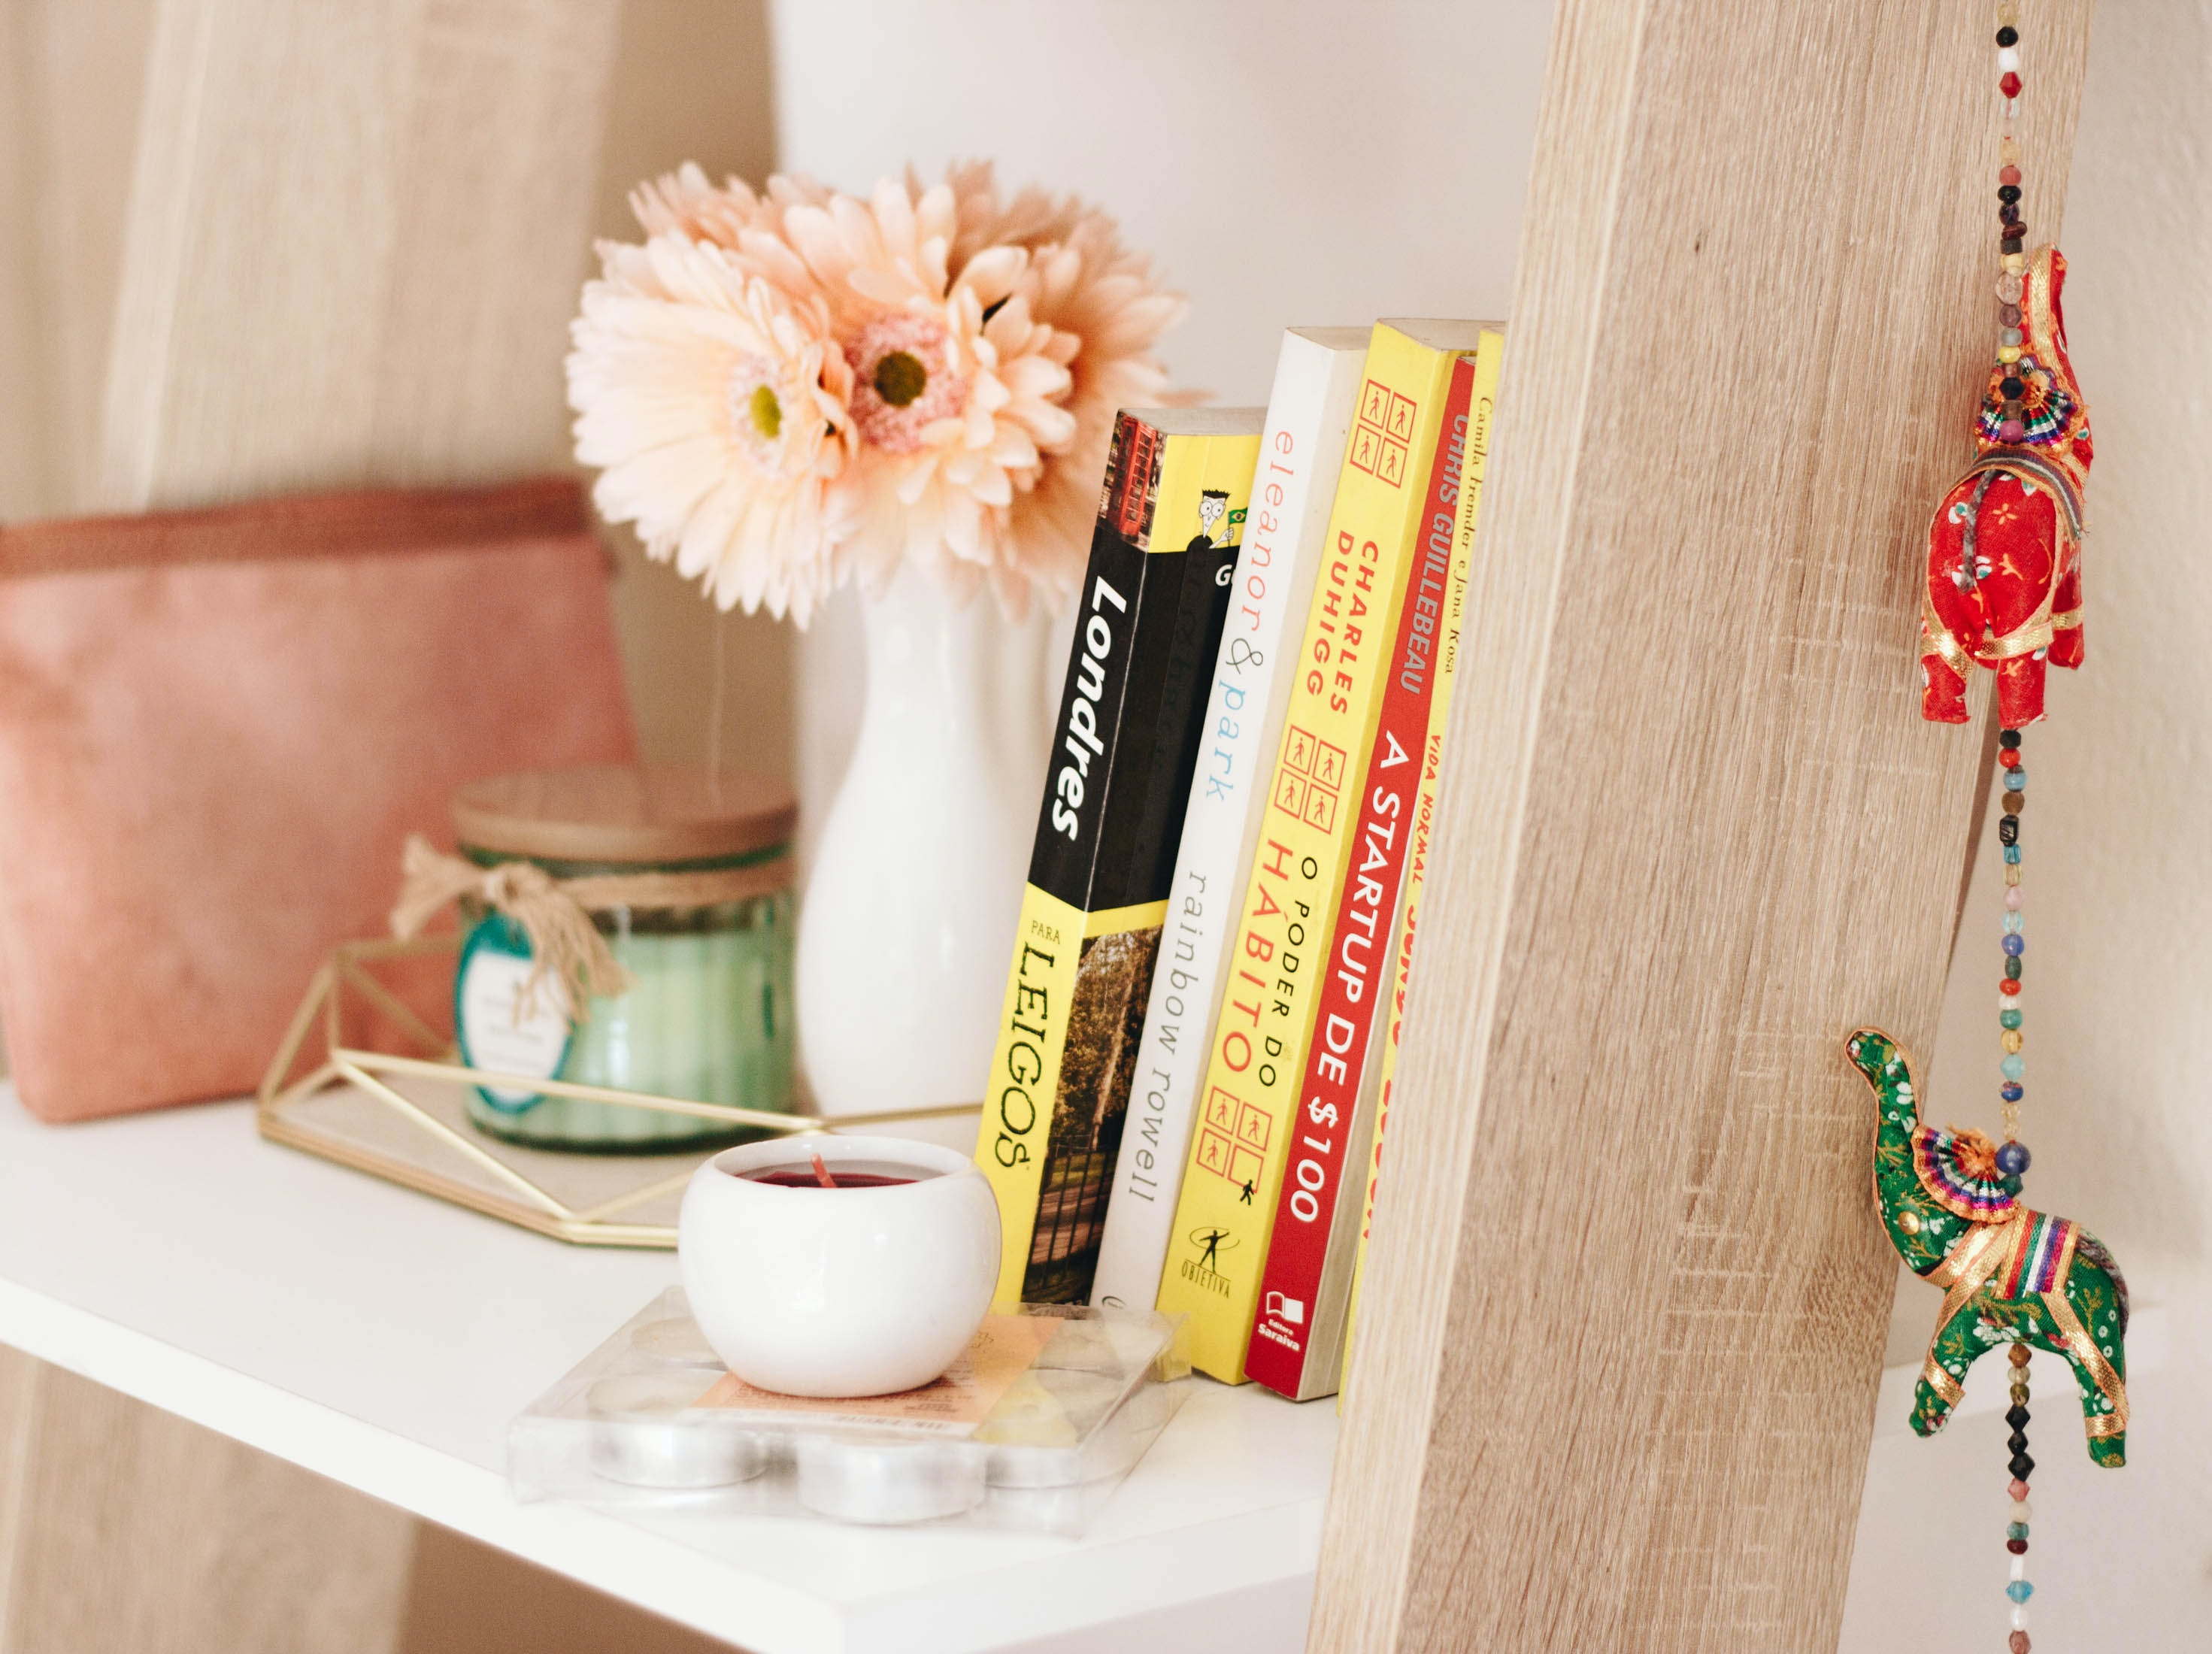 photo of book and candle on shelf